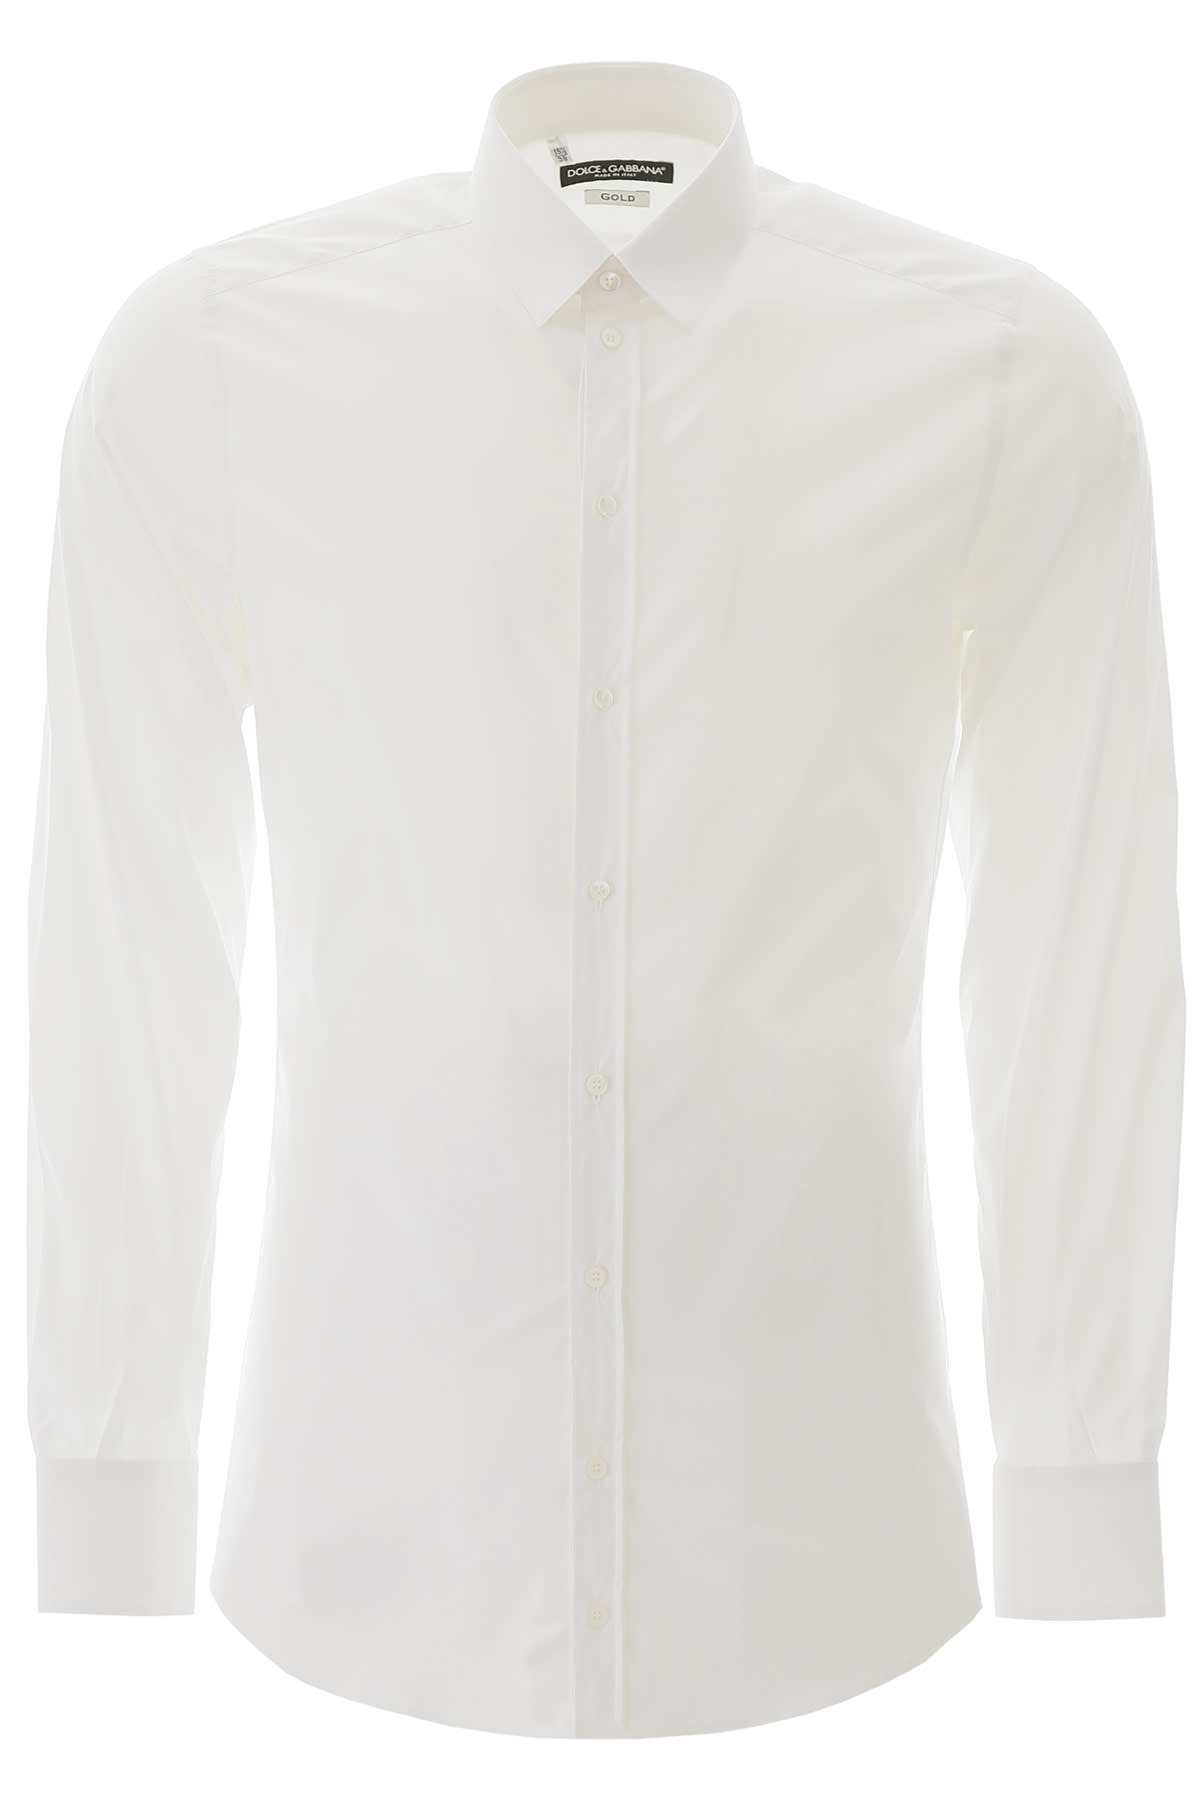 Dolce & Gabbana Gold Fit Shirt